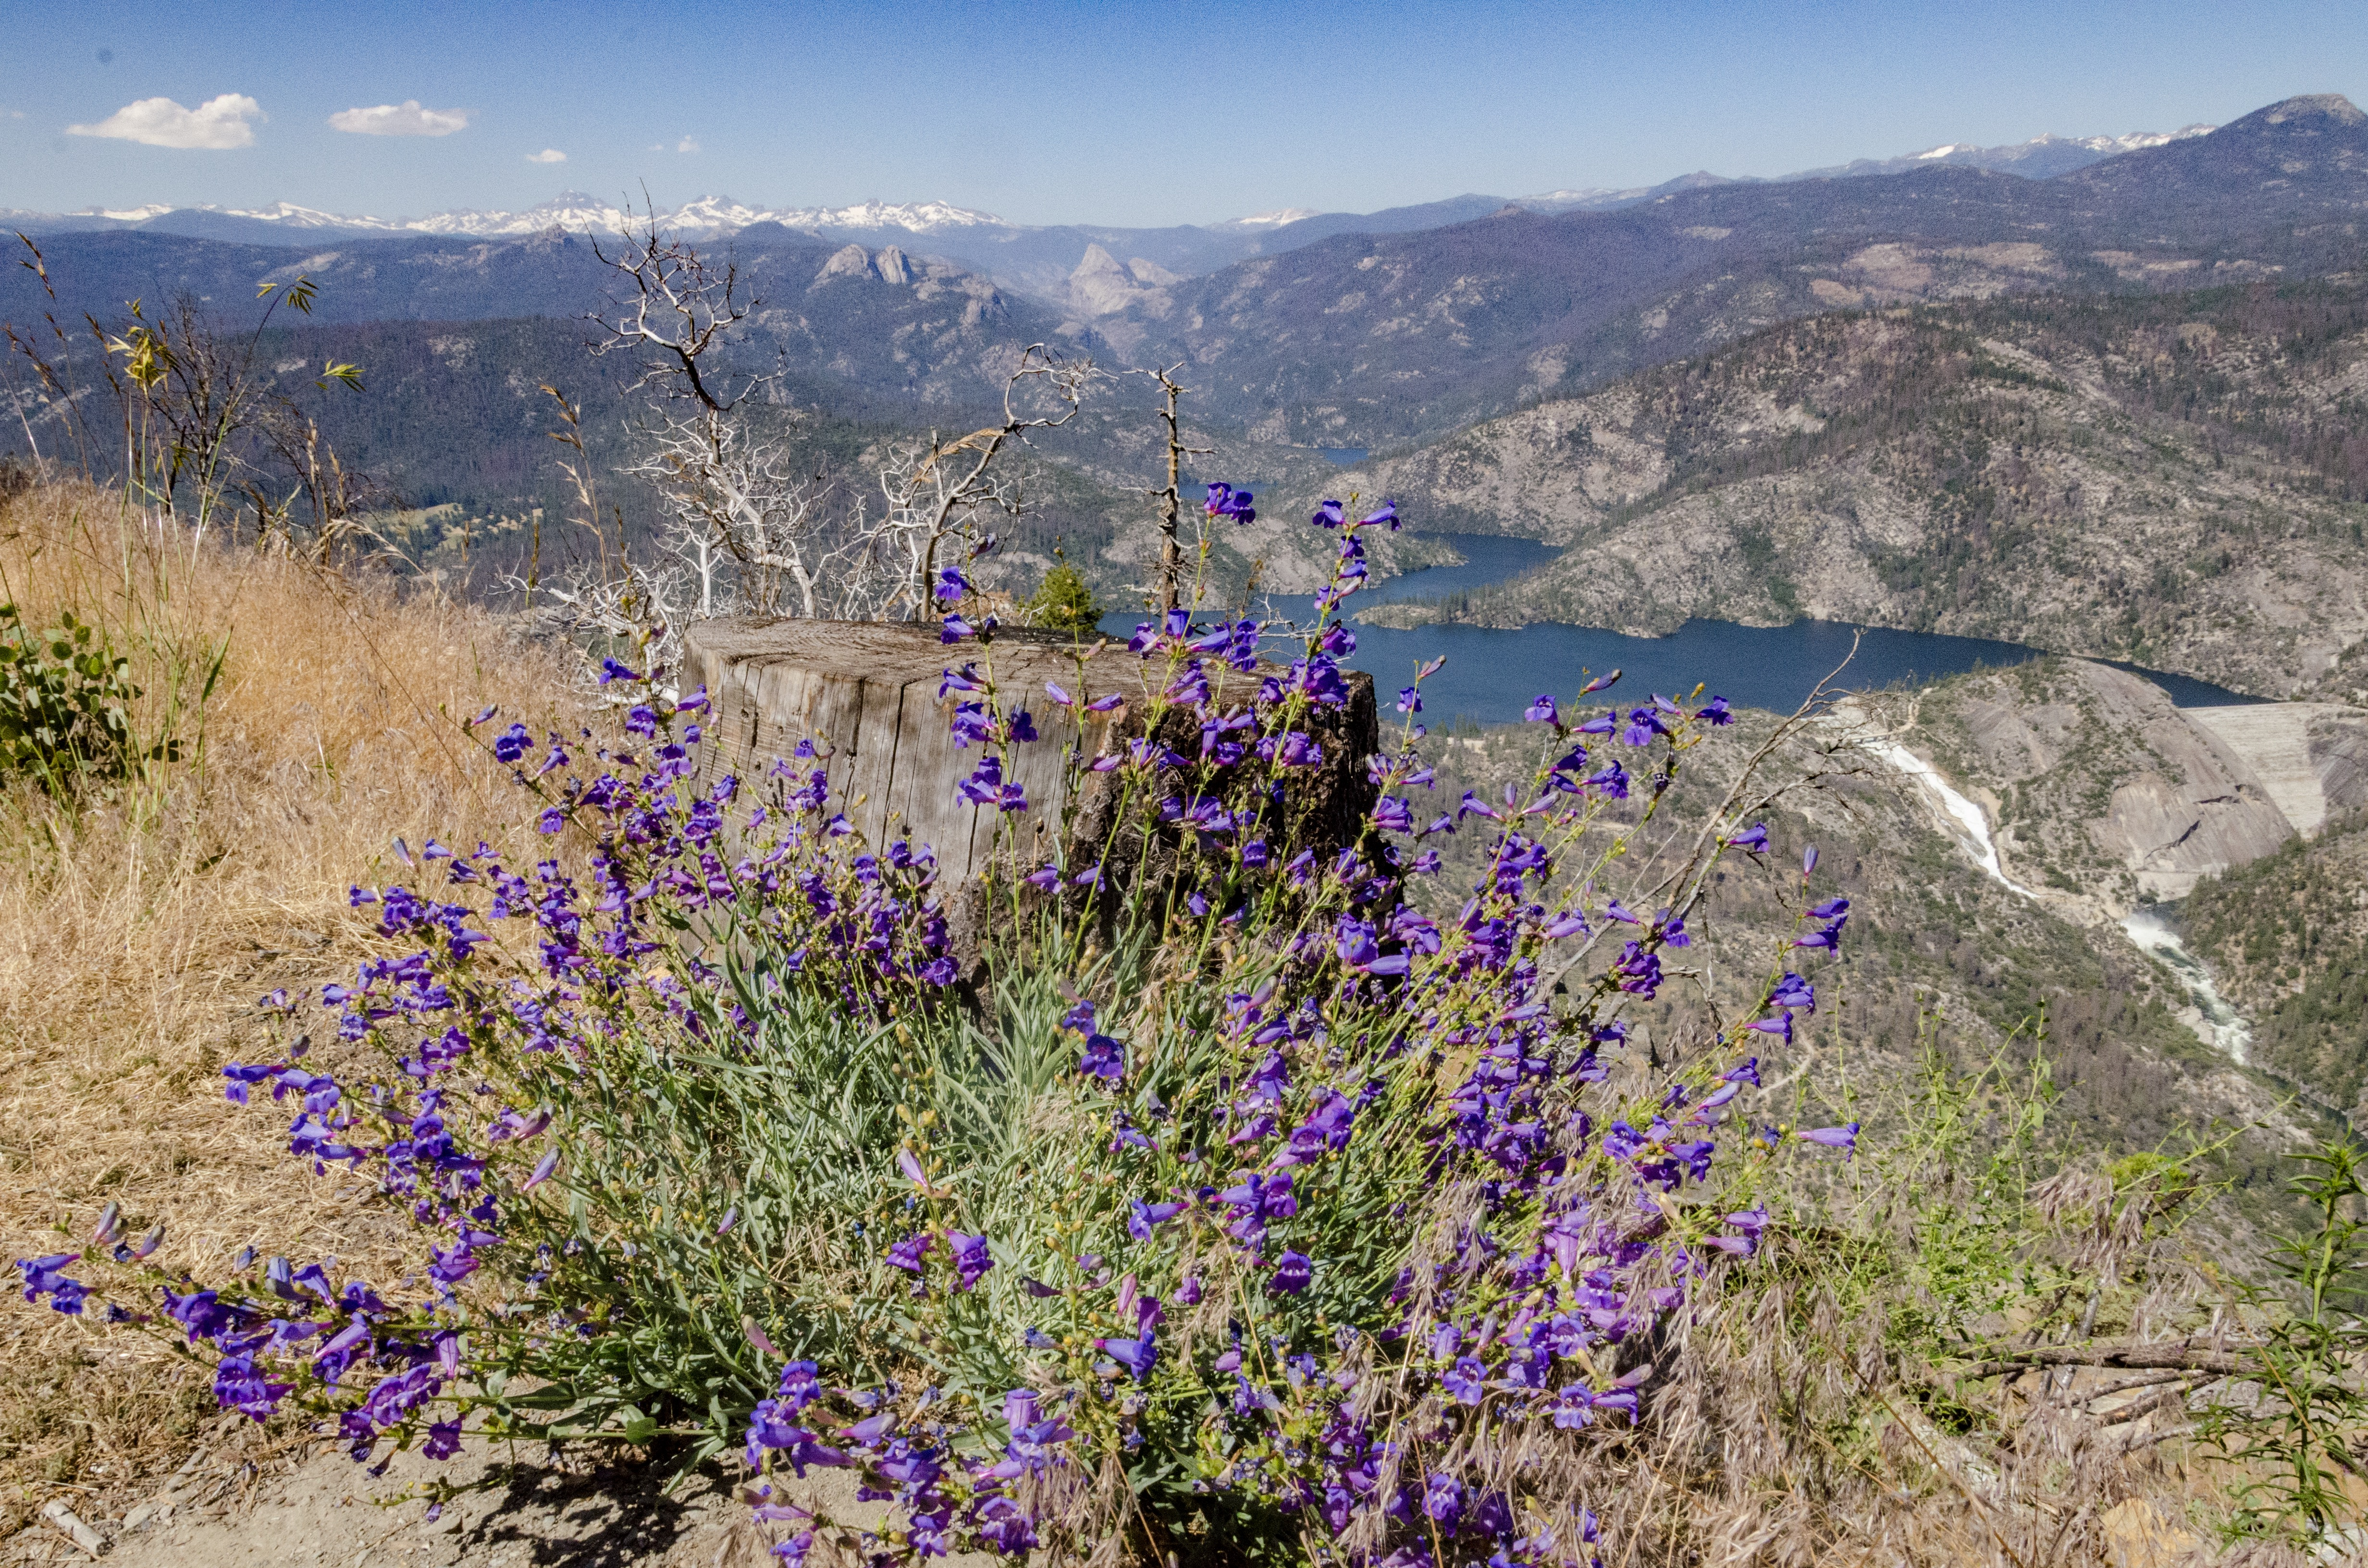 The Sierra Vista Scenic Byway is about a 100 mile loop that starts near the town of North Fork and finishes on Highway 41, just north of Bass Lake.